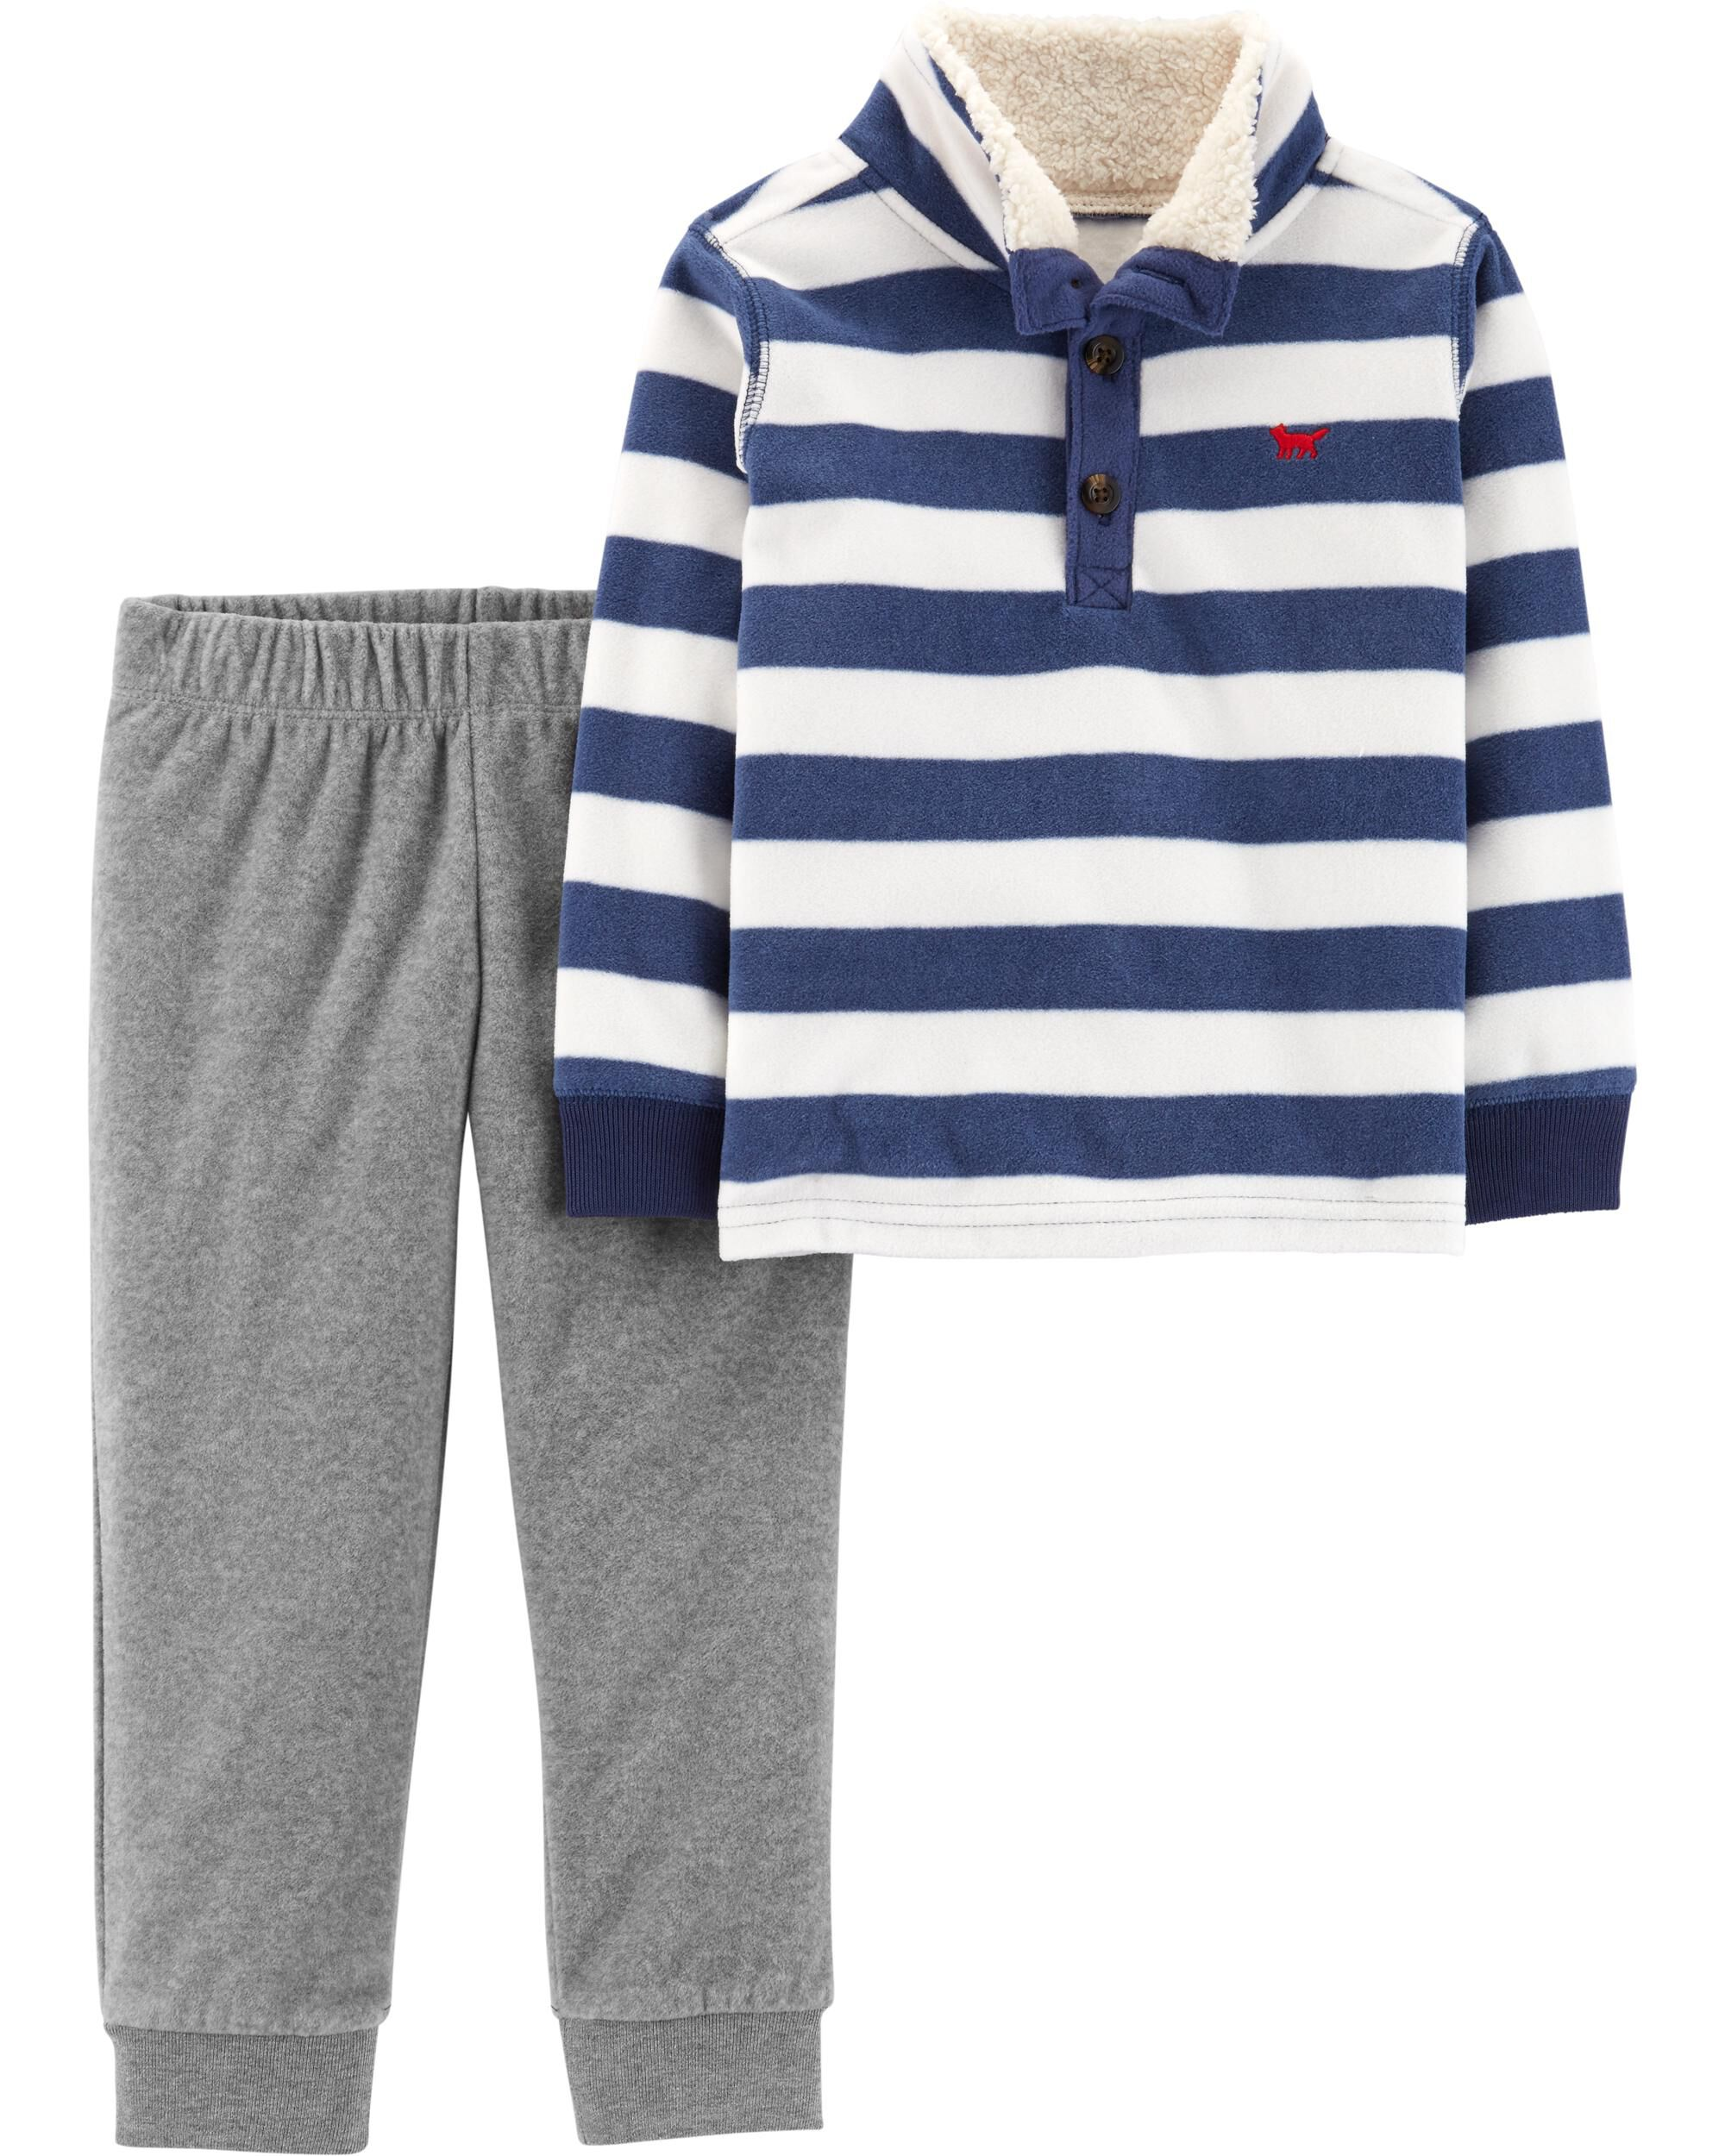 carters boys 2 pieces sweater and pants set Size 4T